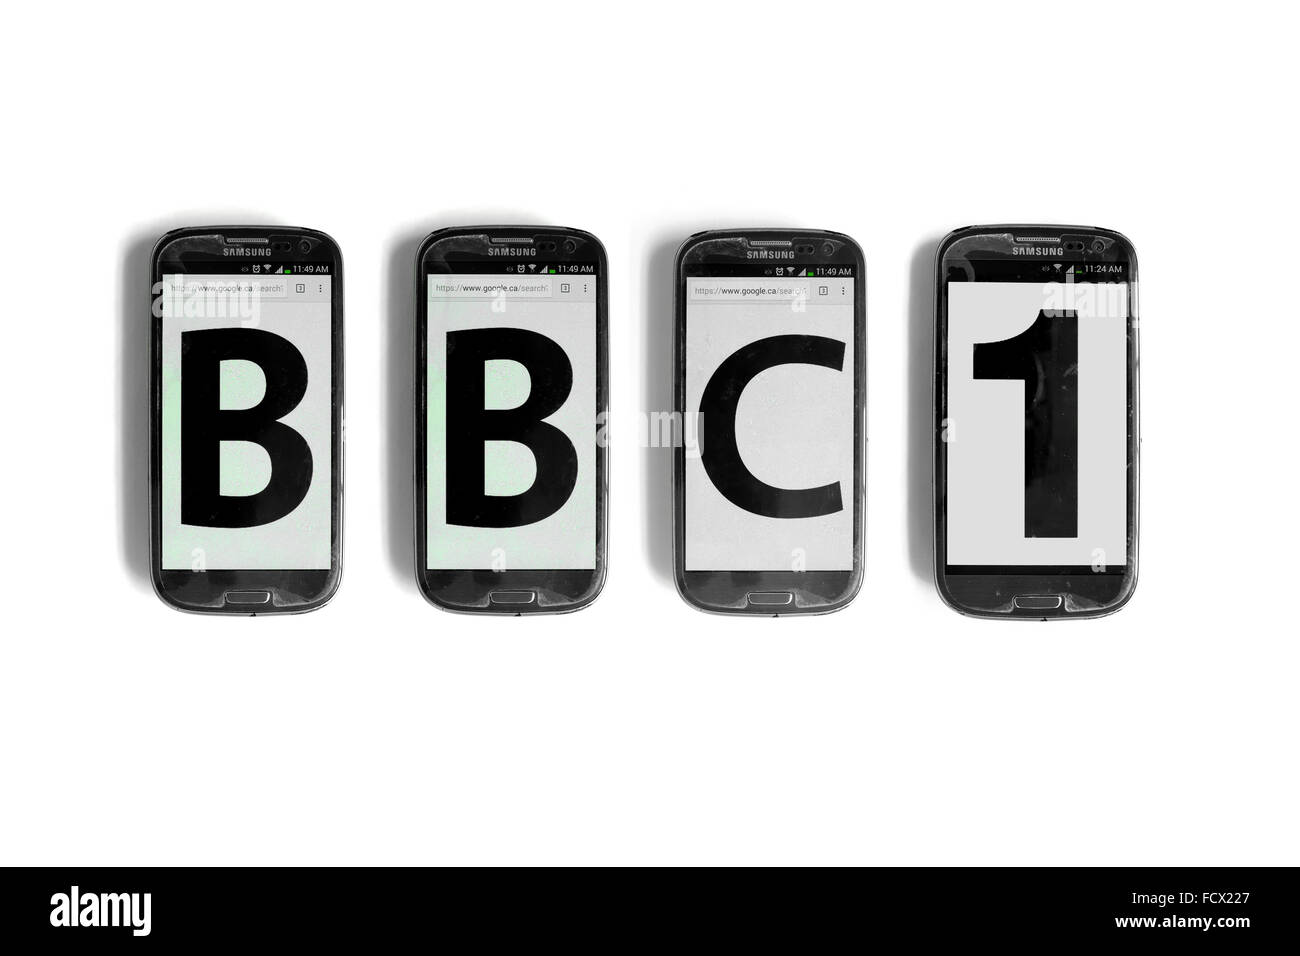 BBC1 written on the screens of smartphone photographed against a white background. - Stock Image